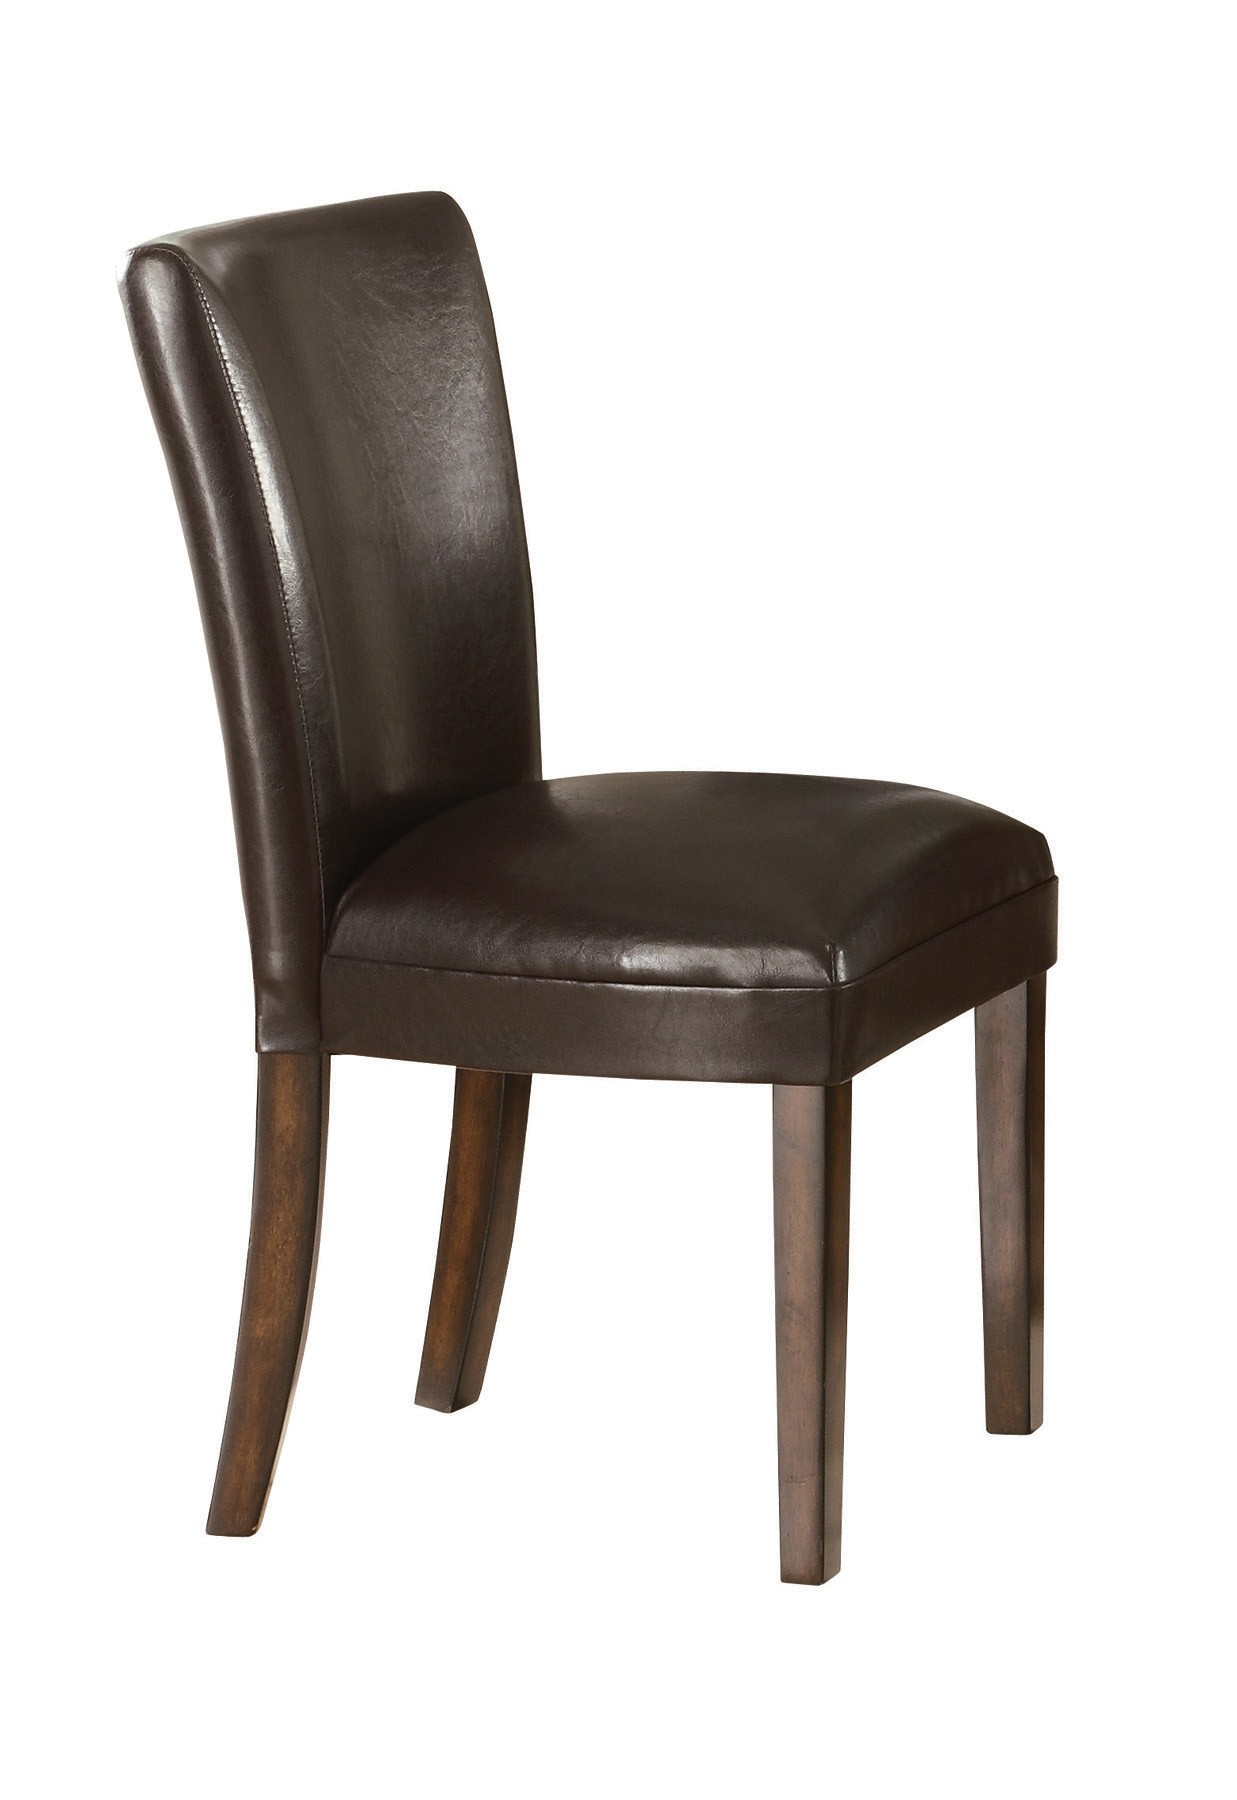 Dining Side Chairs Coaster Upholstered Durable Brown Faux Leather Parsons